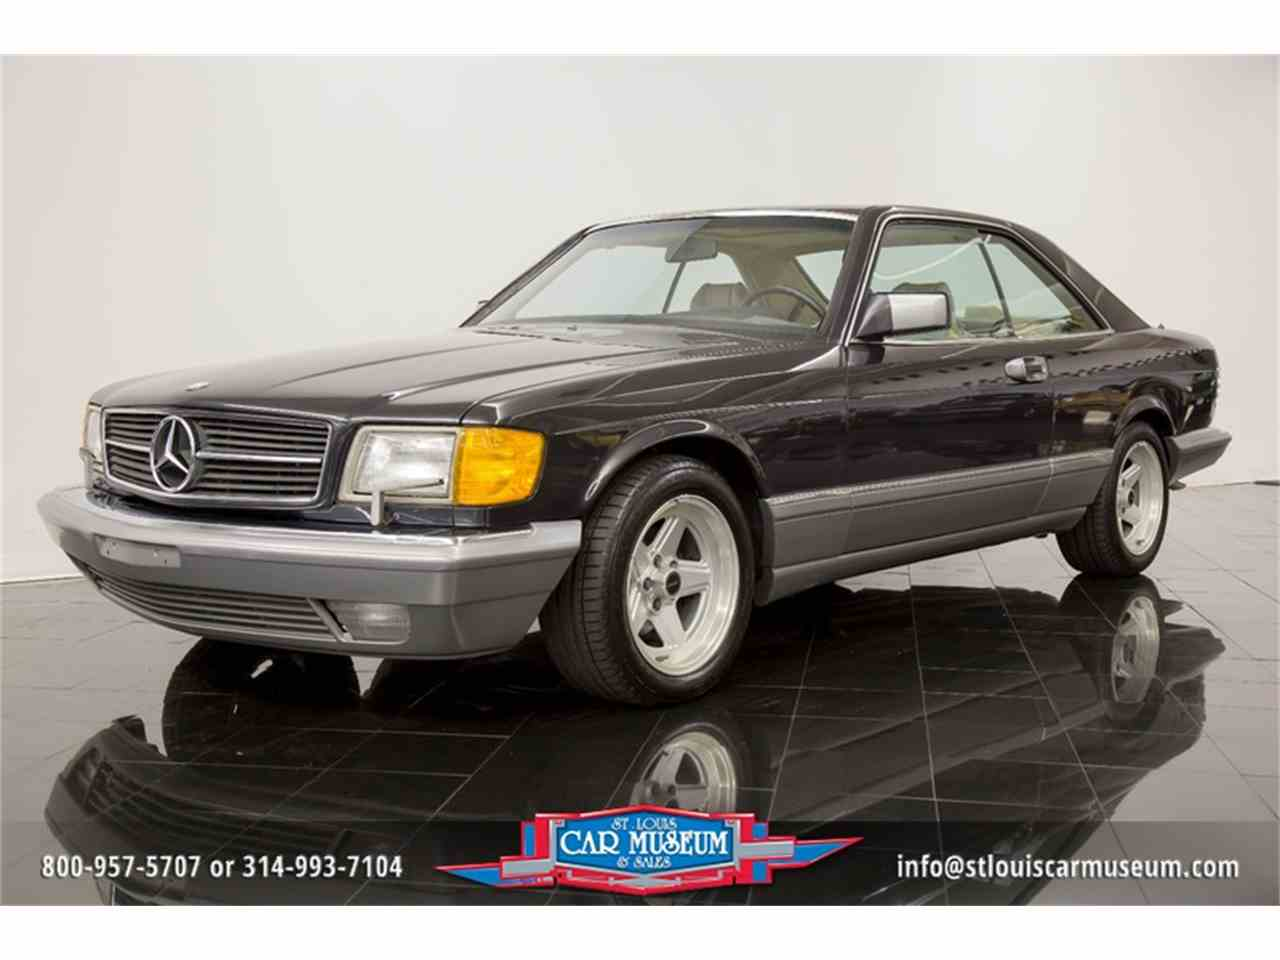 1987 mercedes benz 560sec sport coupe for sale for Mercedes benz 560sec for sale